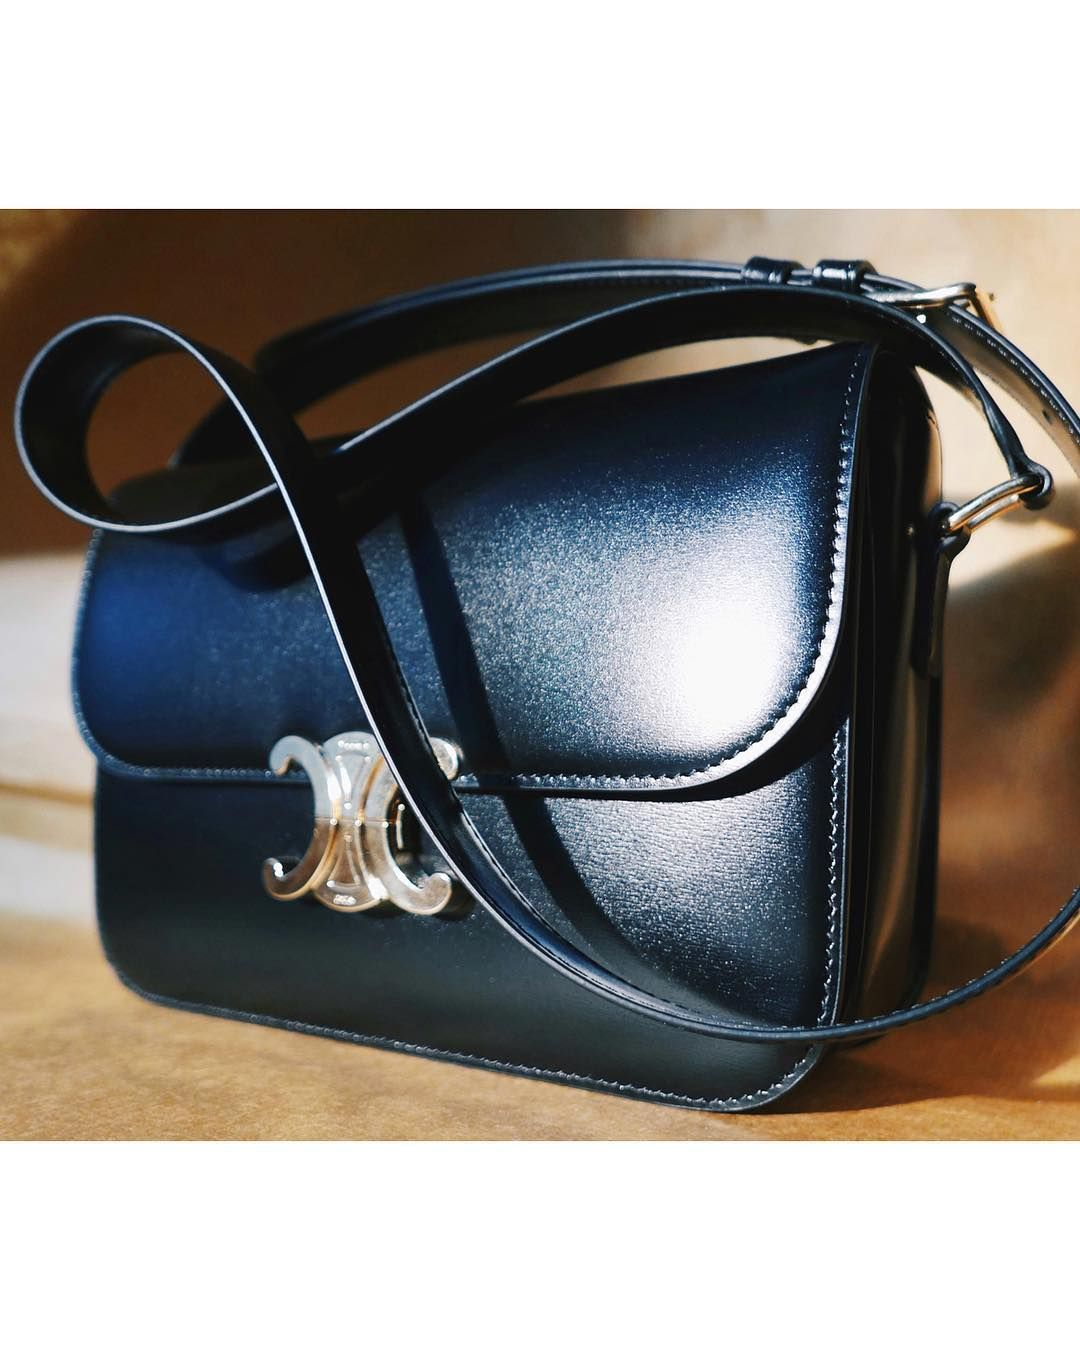 f1ad41977a0a Hand on heart my favourite bag from  celine s upcoming S S19 that will be  available next week. Leather is soft yet slick